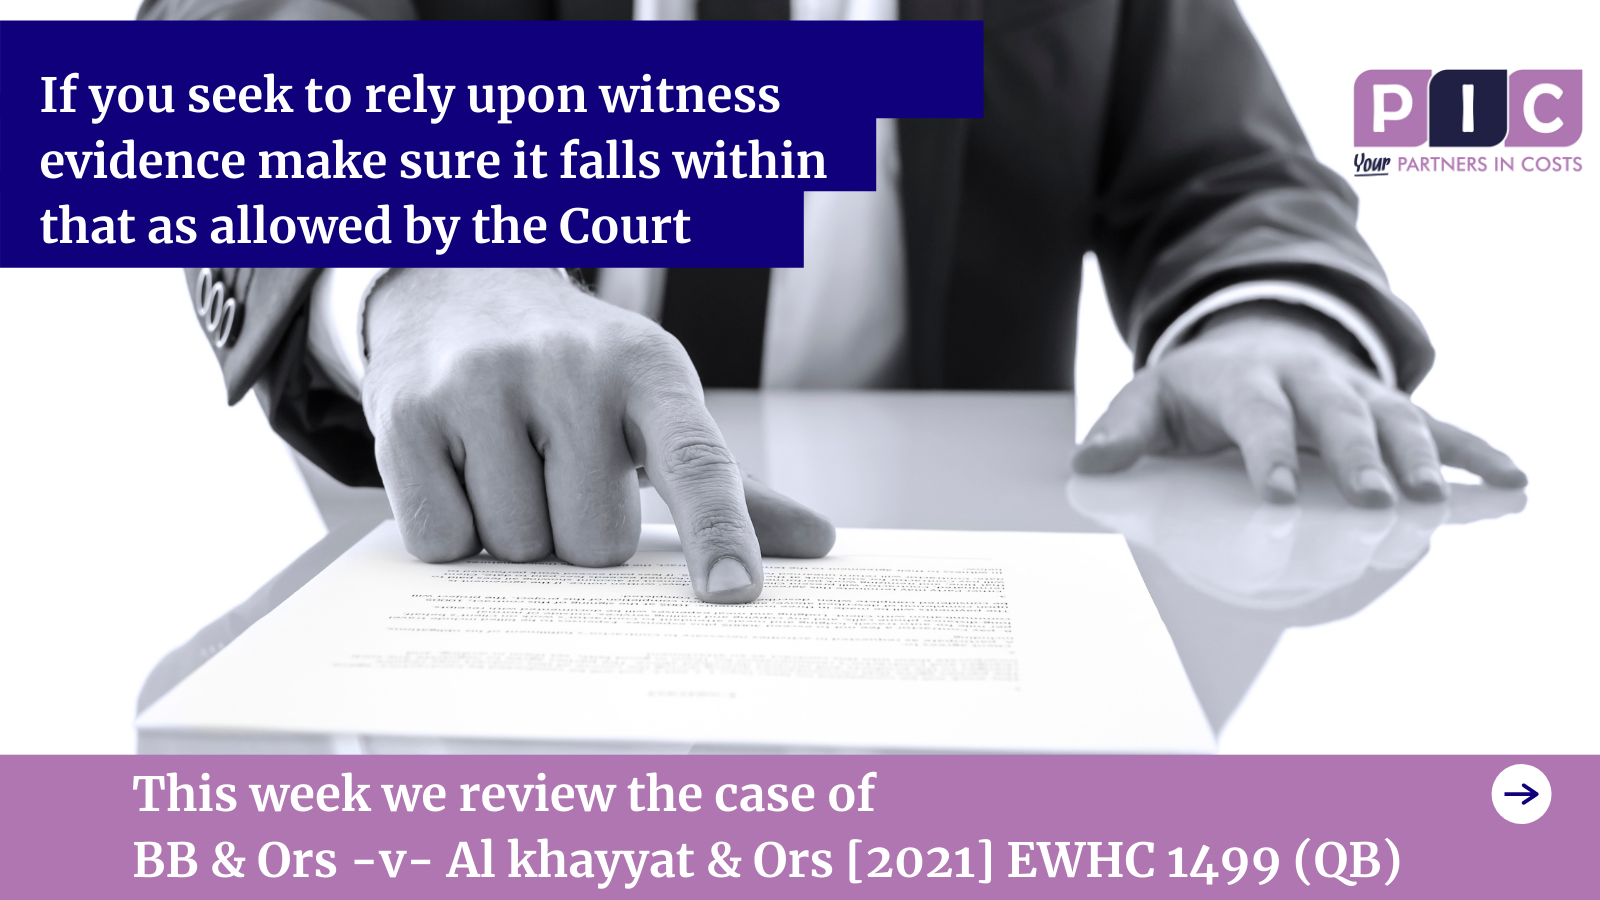 Does your witness evidence fall within that as allowed by the Court?